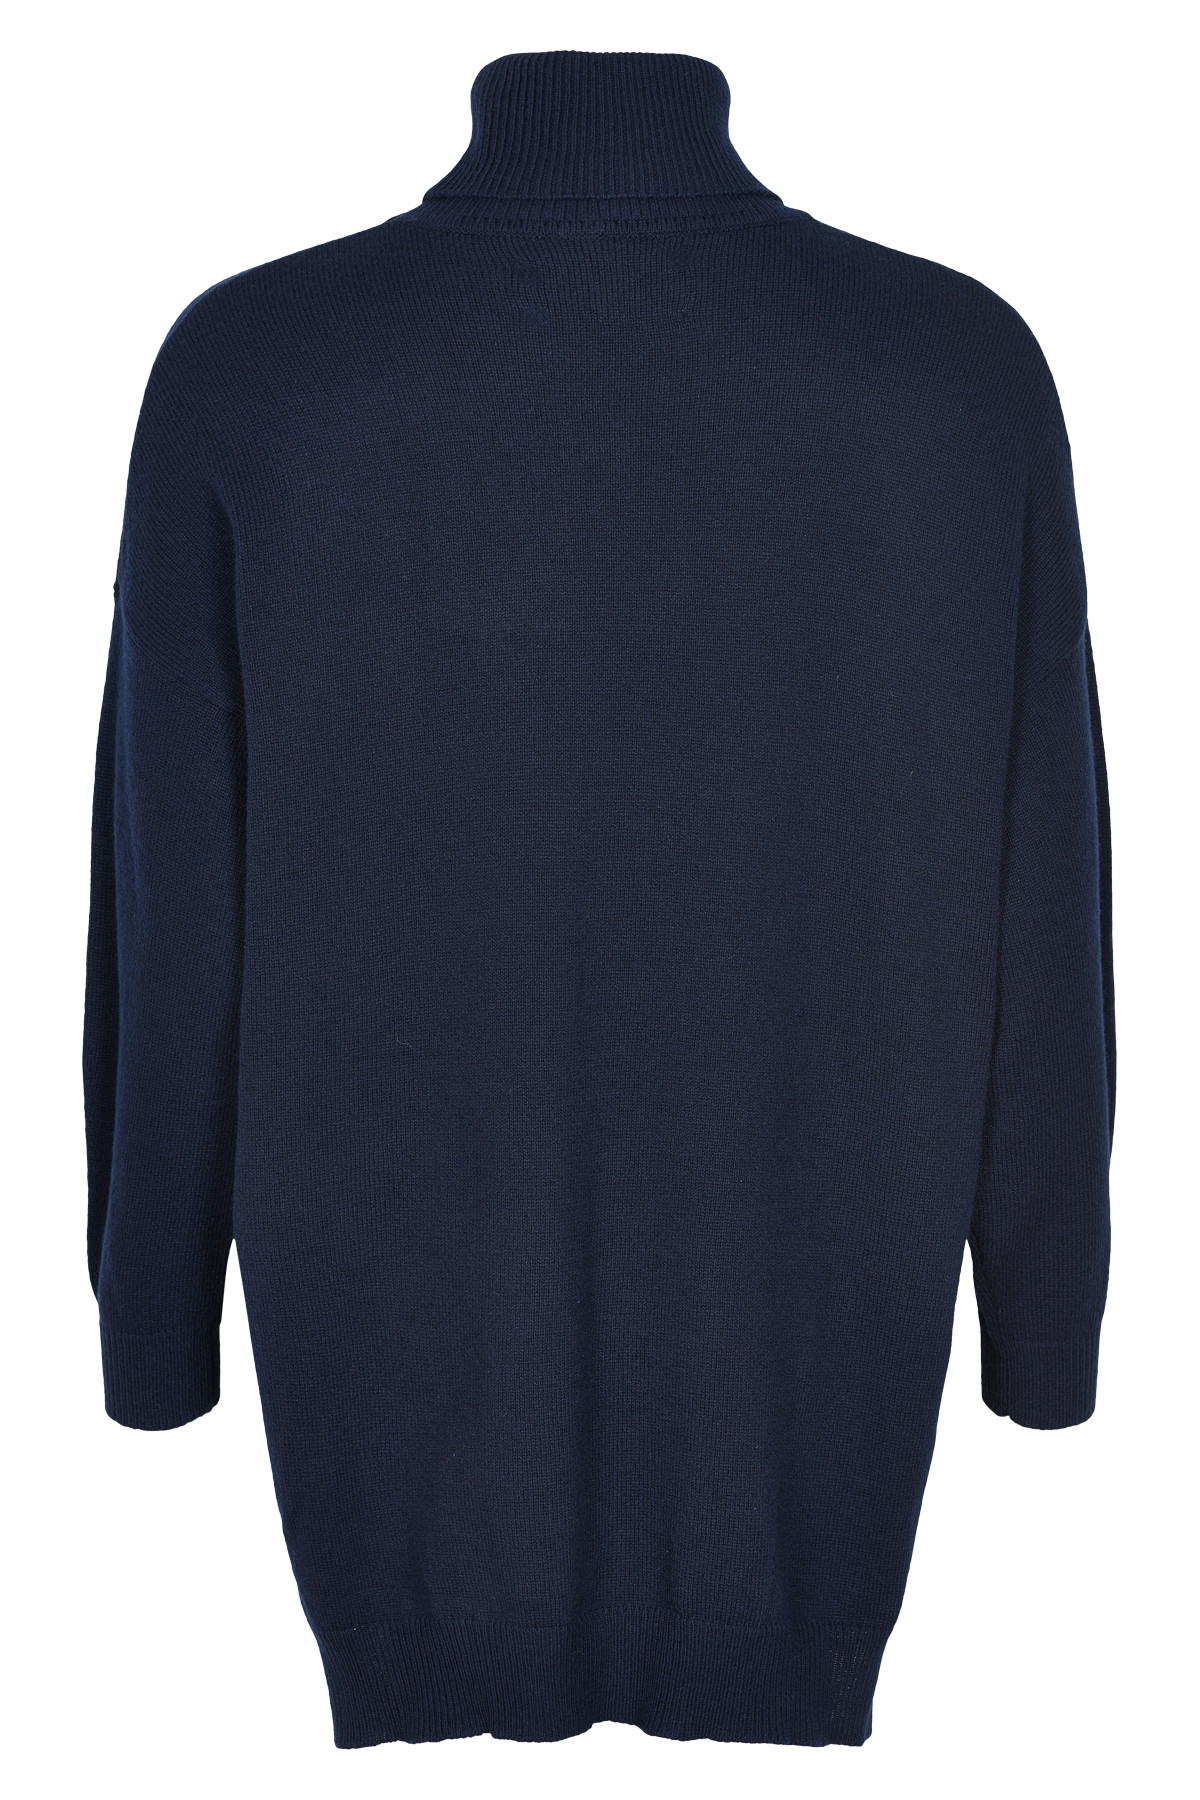 Image of   AND LESS ALLESHA PULLOVER 5519214 (Blue Nights, M)